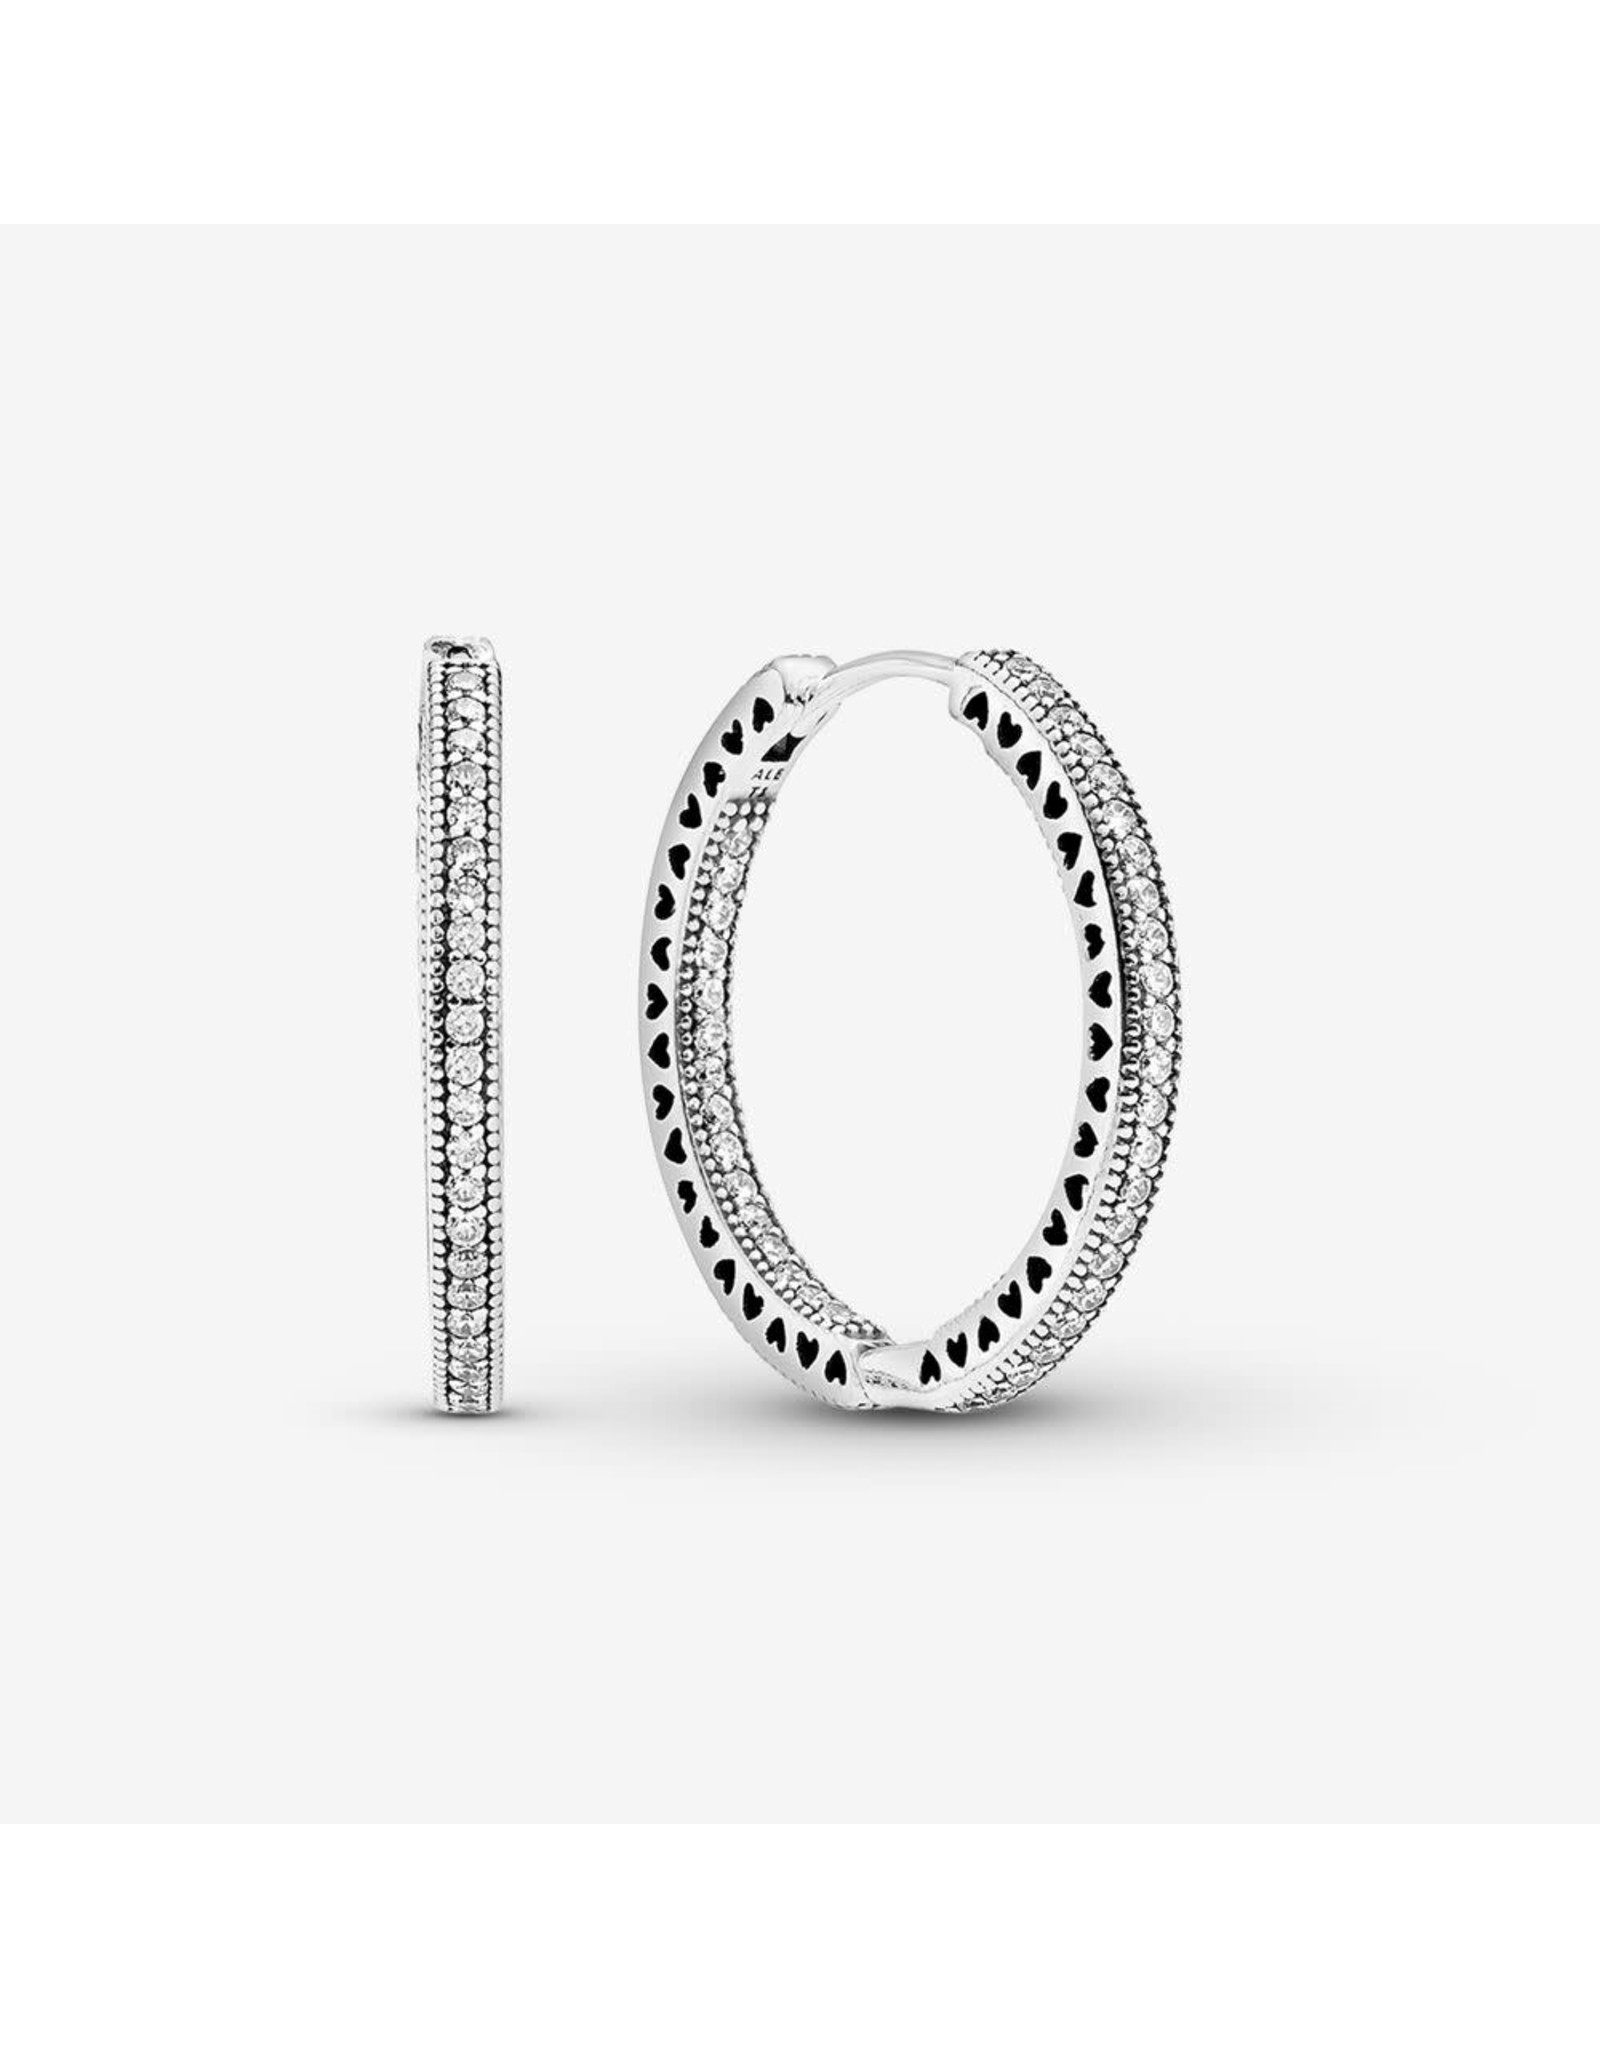 Pandora Pandora Hoop Earrings(296319CZ) In Sterling Silver With Clear And Cut-Out Heart Details